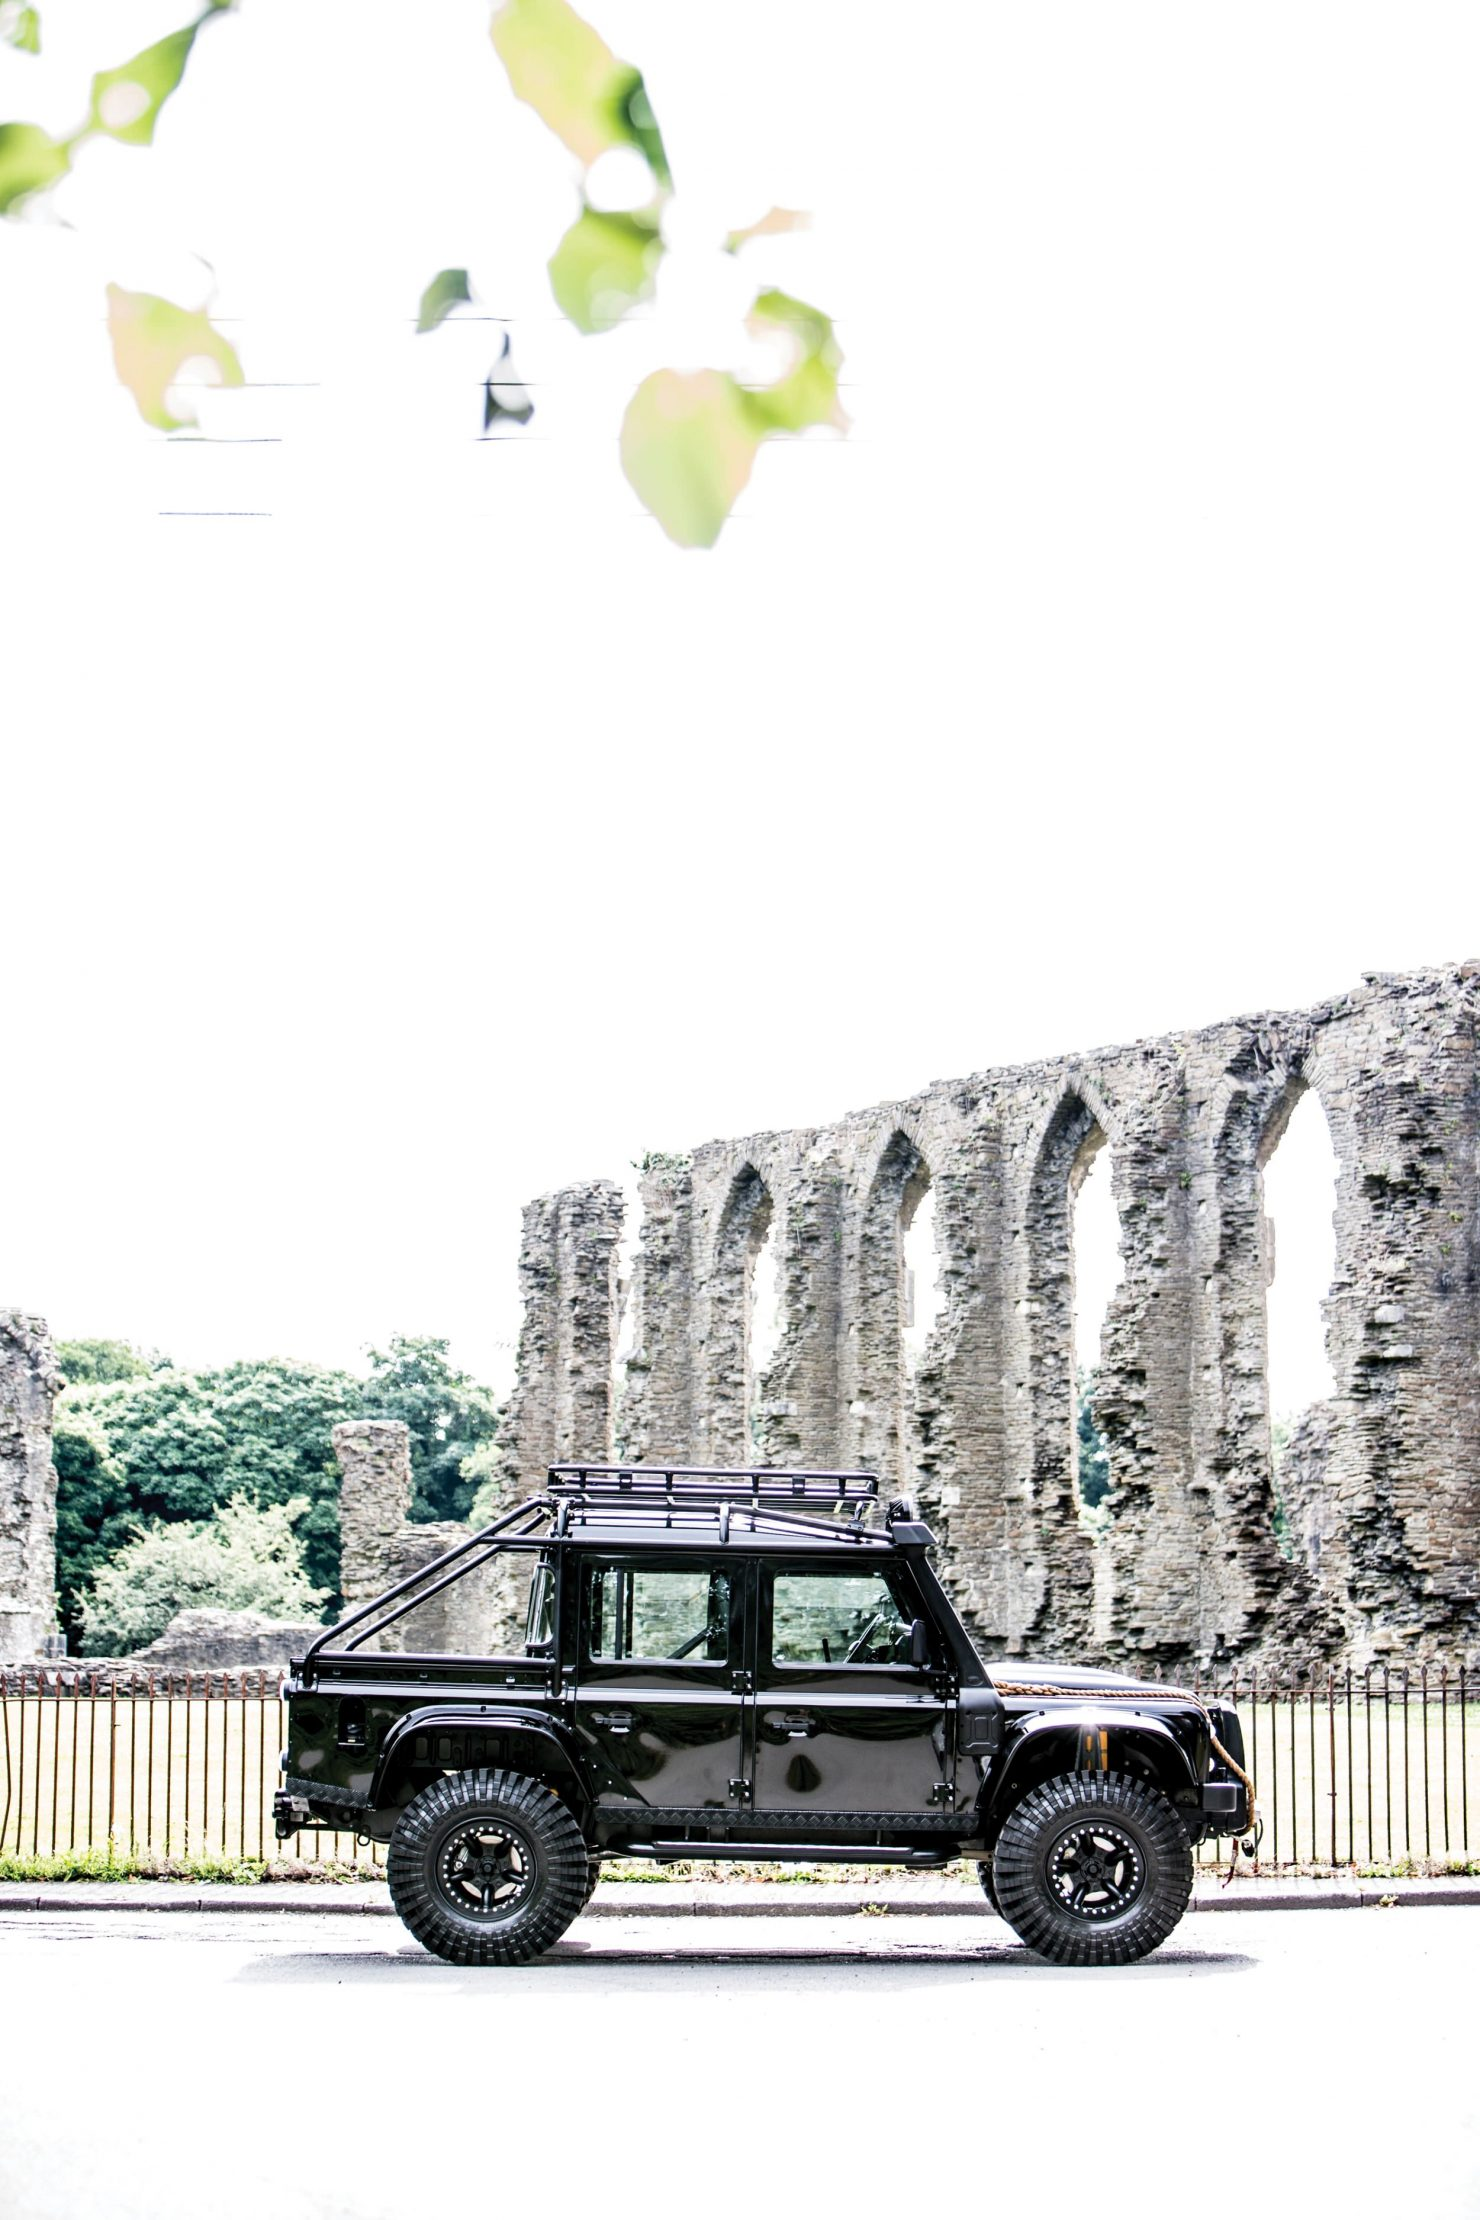 james bond spectre land rover defender svx 4 1480x2220 - Ex-James Bond Spectre - Land Rover Defender SVX